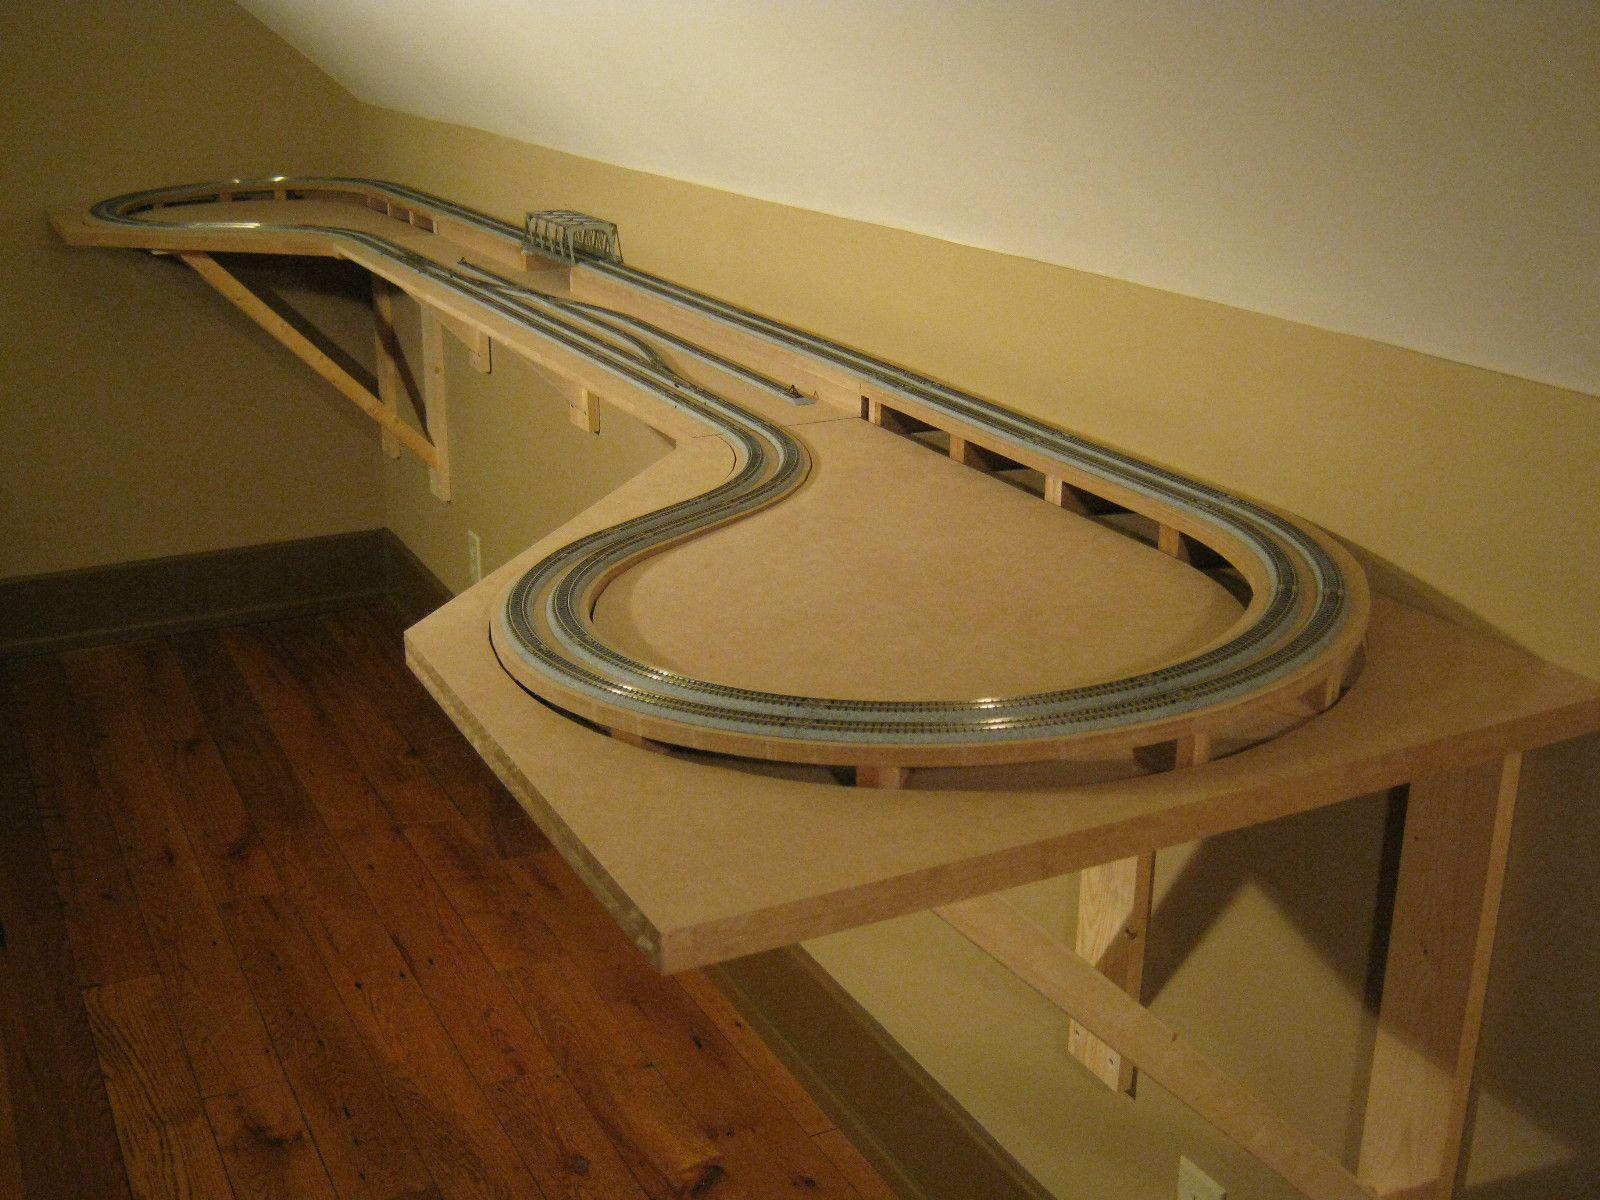 Smith creek designs n scale model railroad shelf layout with kato unitrack kato unitrack - Ho scale layouts for small spaces concept ...